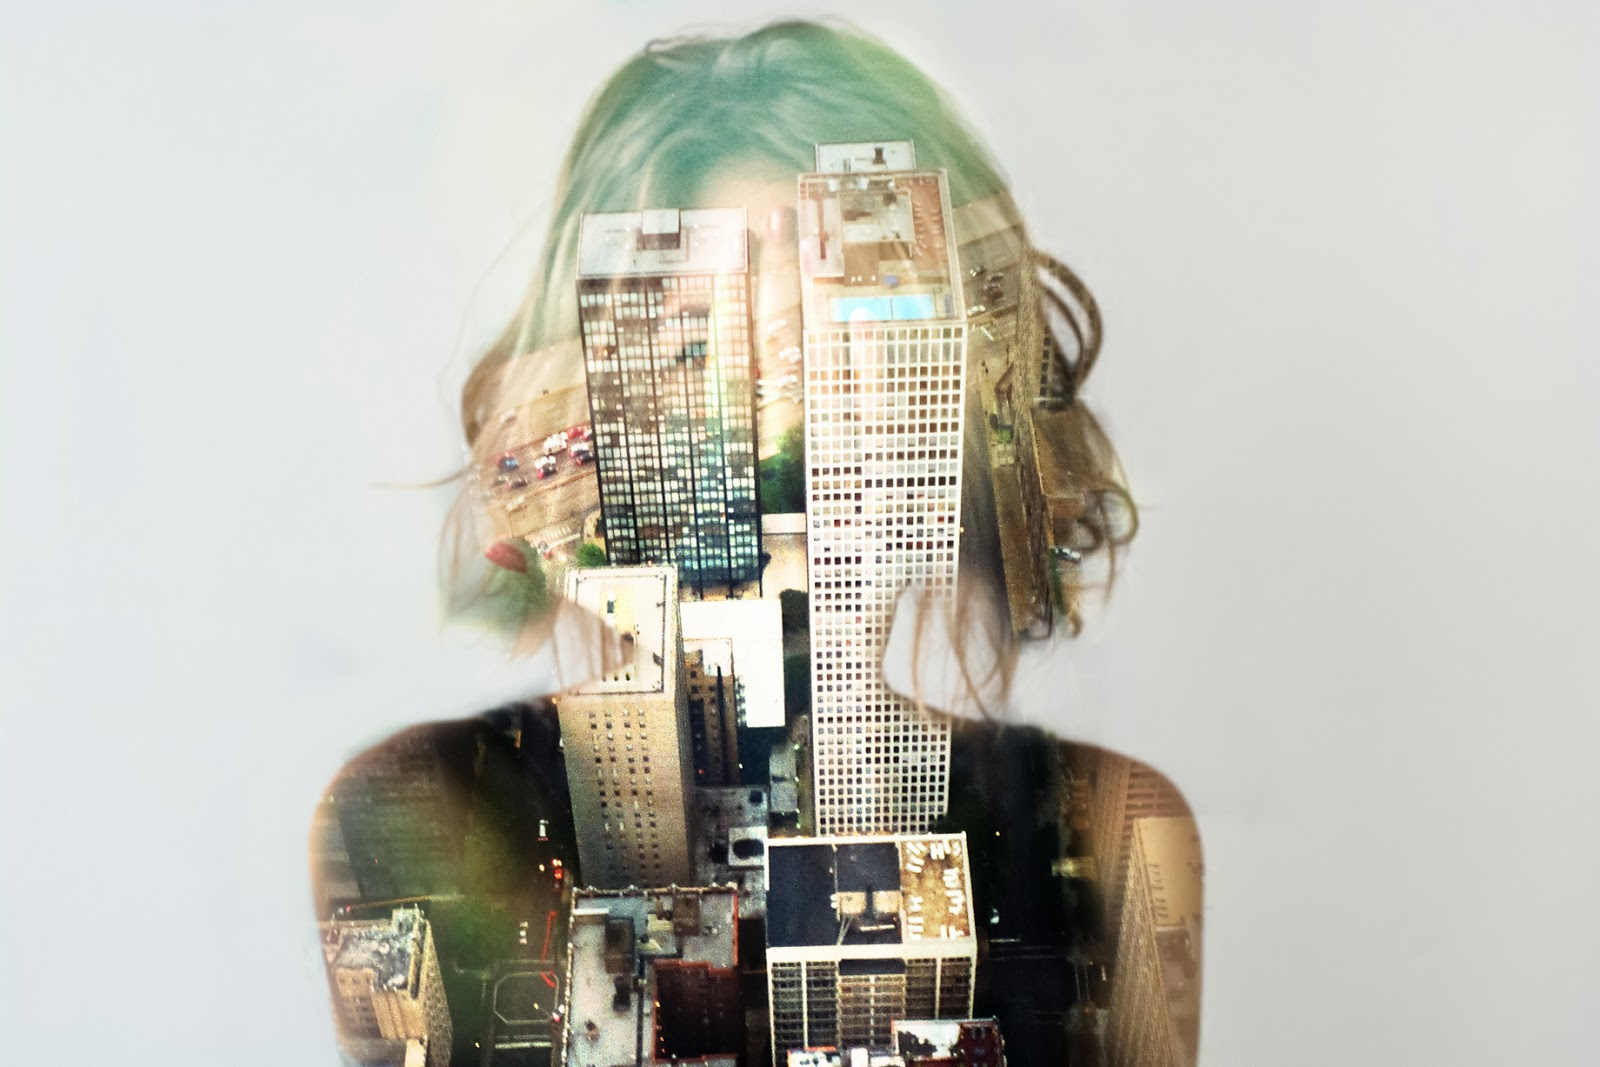 Double, multiple exposure photography. Every you is a Universe. Not only one but multiple.So don't be afraid to see them inside yourself, don't be scared to feel and live them. And be brave to let them out and show them to the World. Chicago buildings in me, big city life. Nina Sinitskaya, Grain Pixels 2014